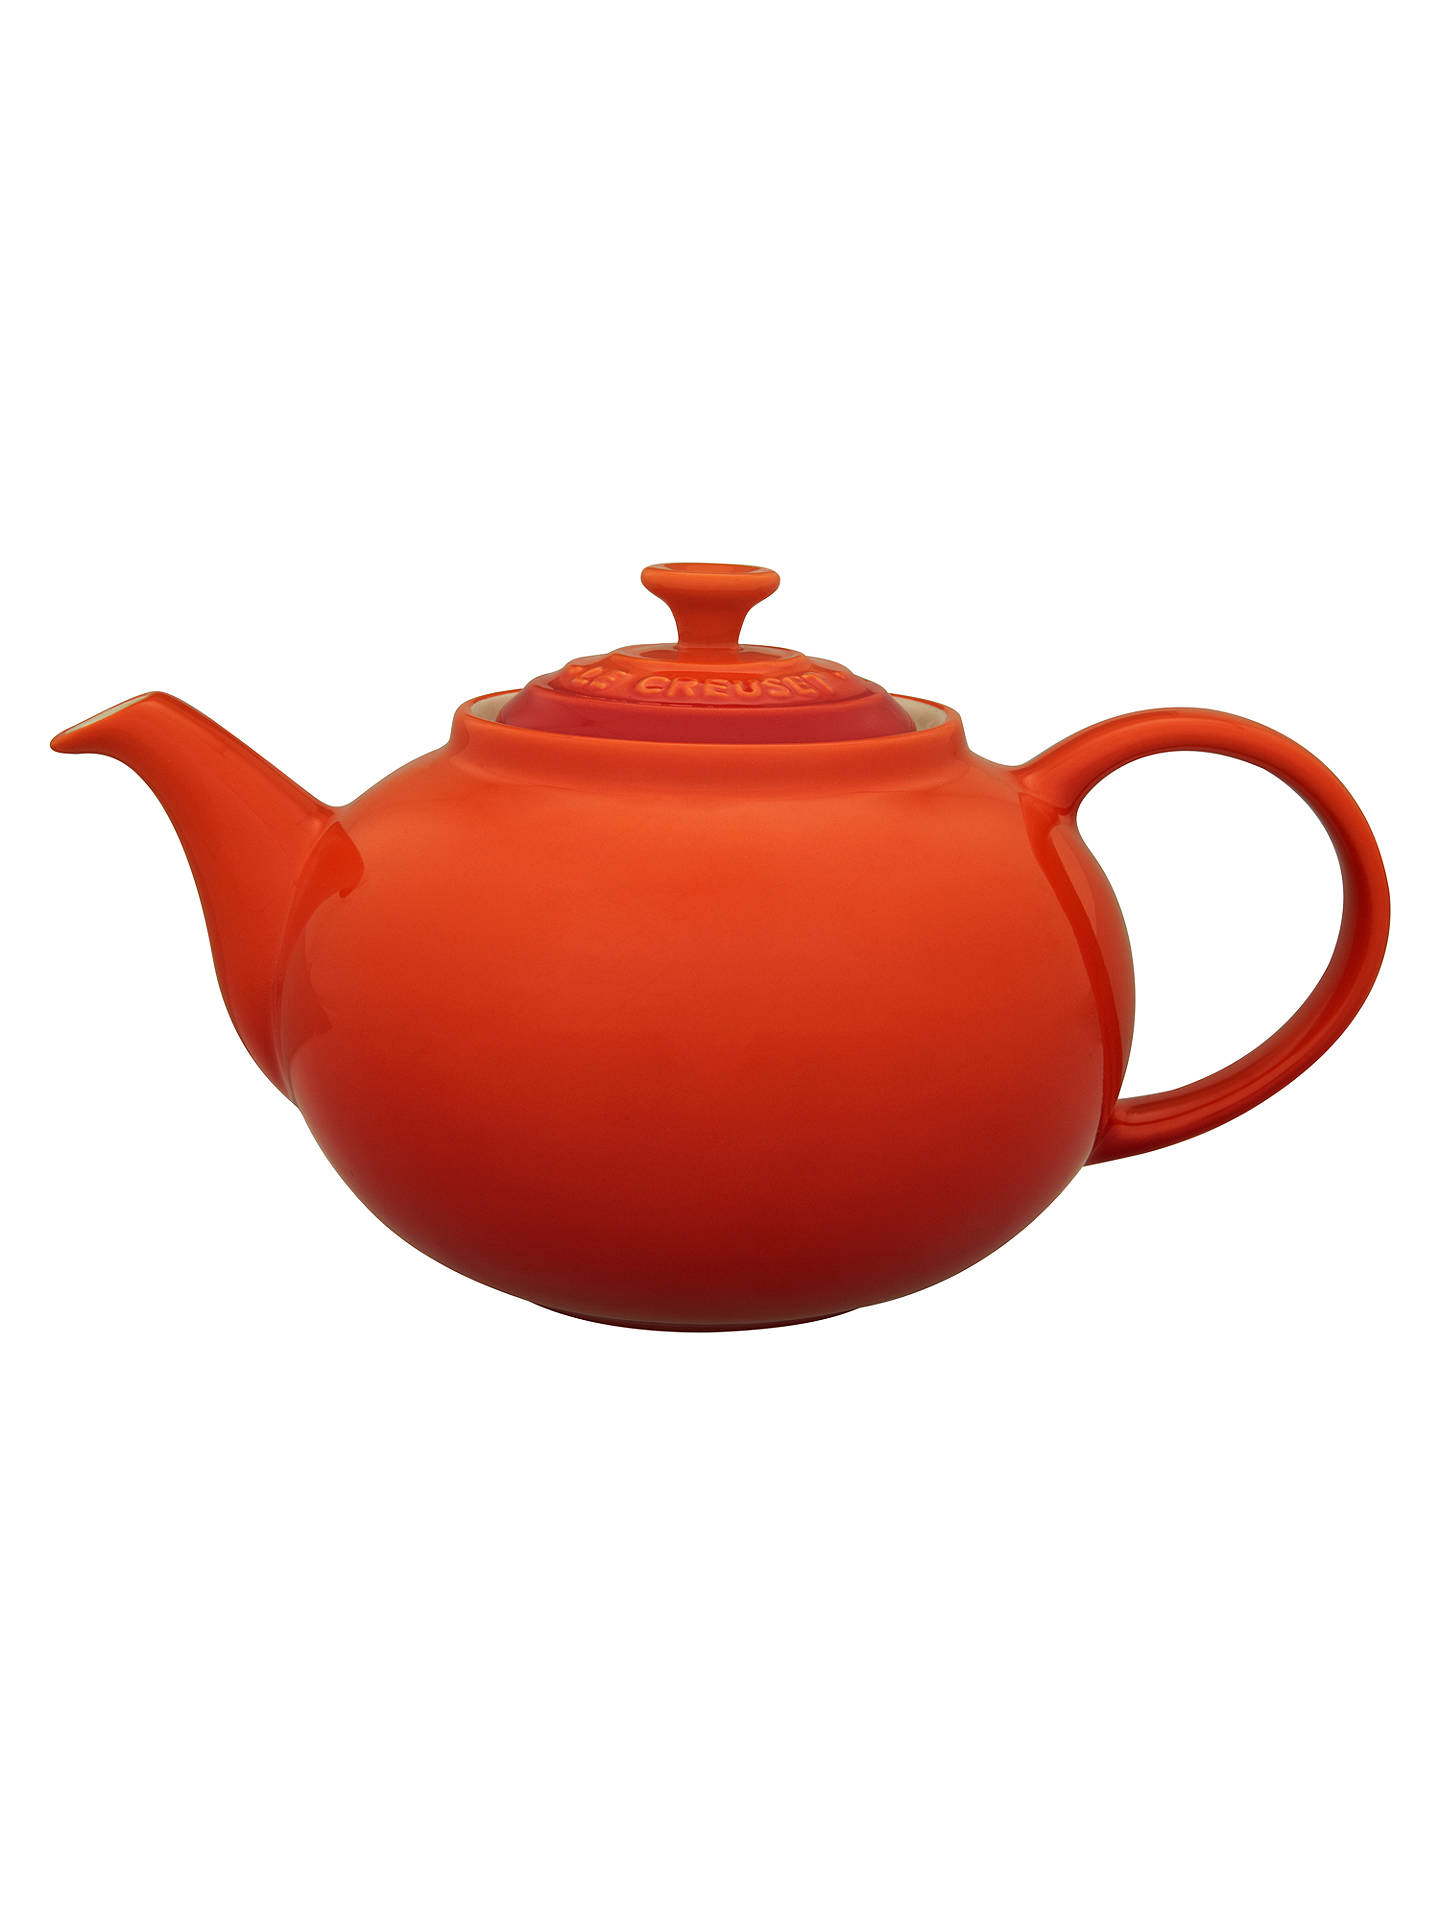 BuyLe Creuset Stoneware Classic 5 Cup Teapot, 1.3L, Volcanic Online at johnlewis.com